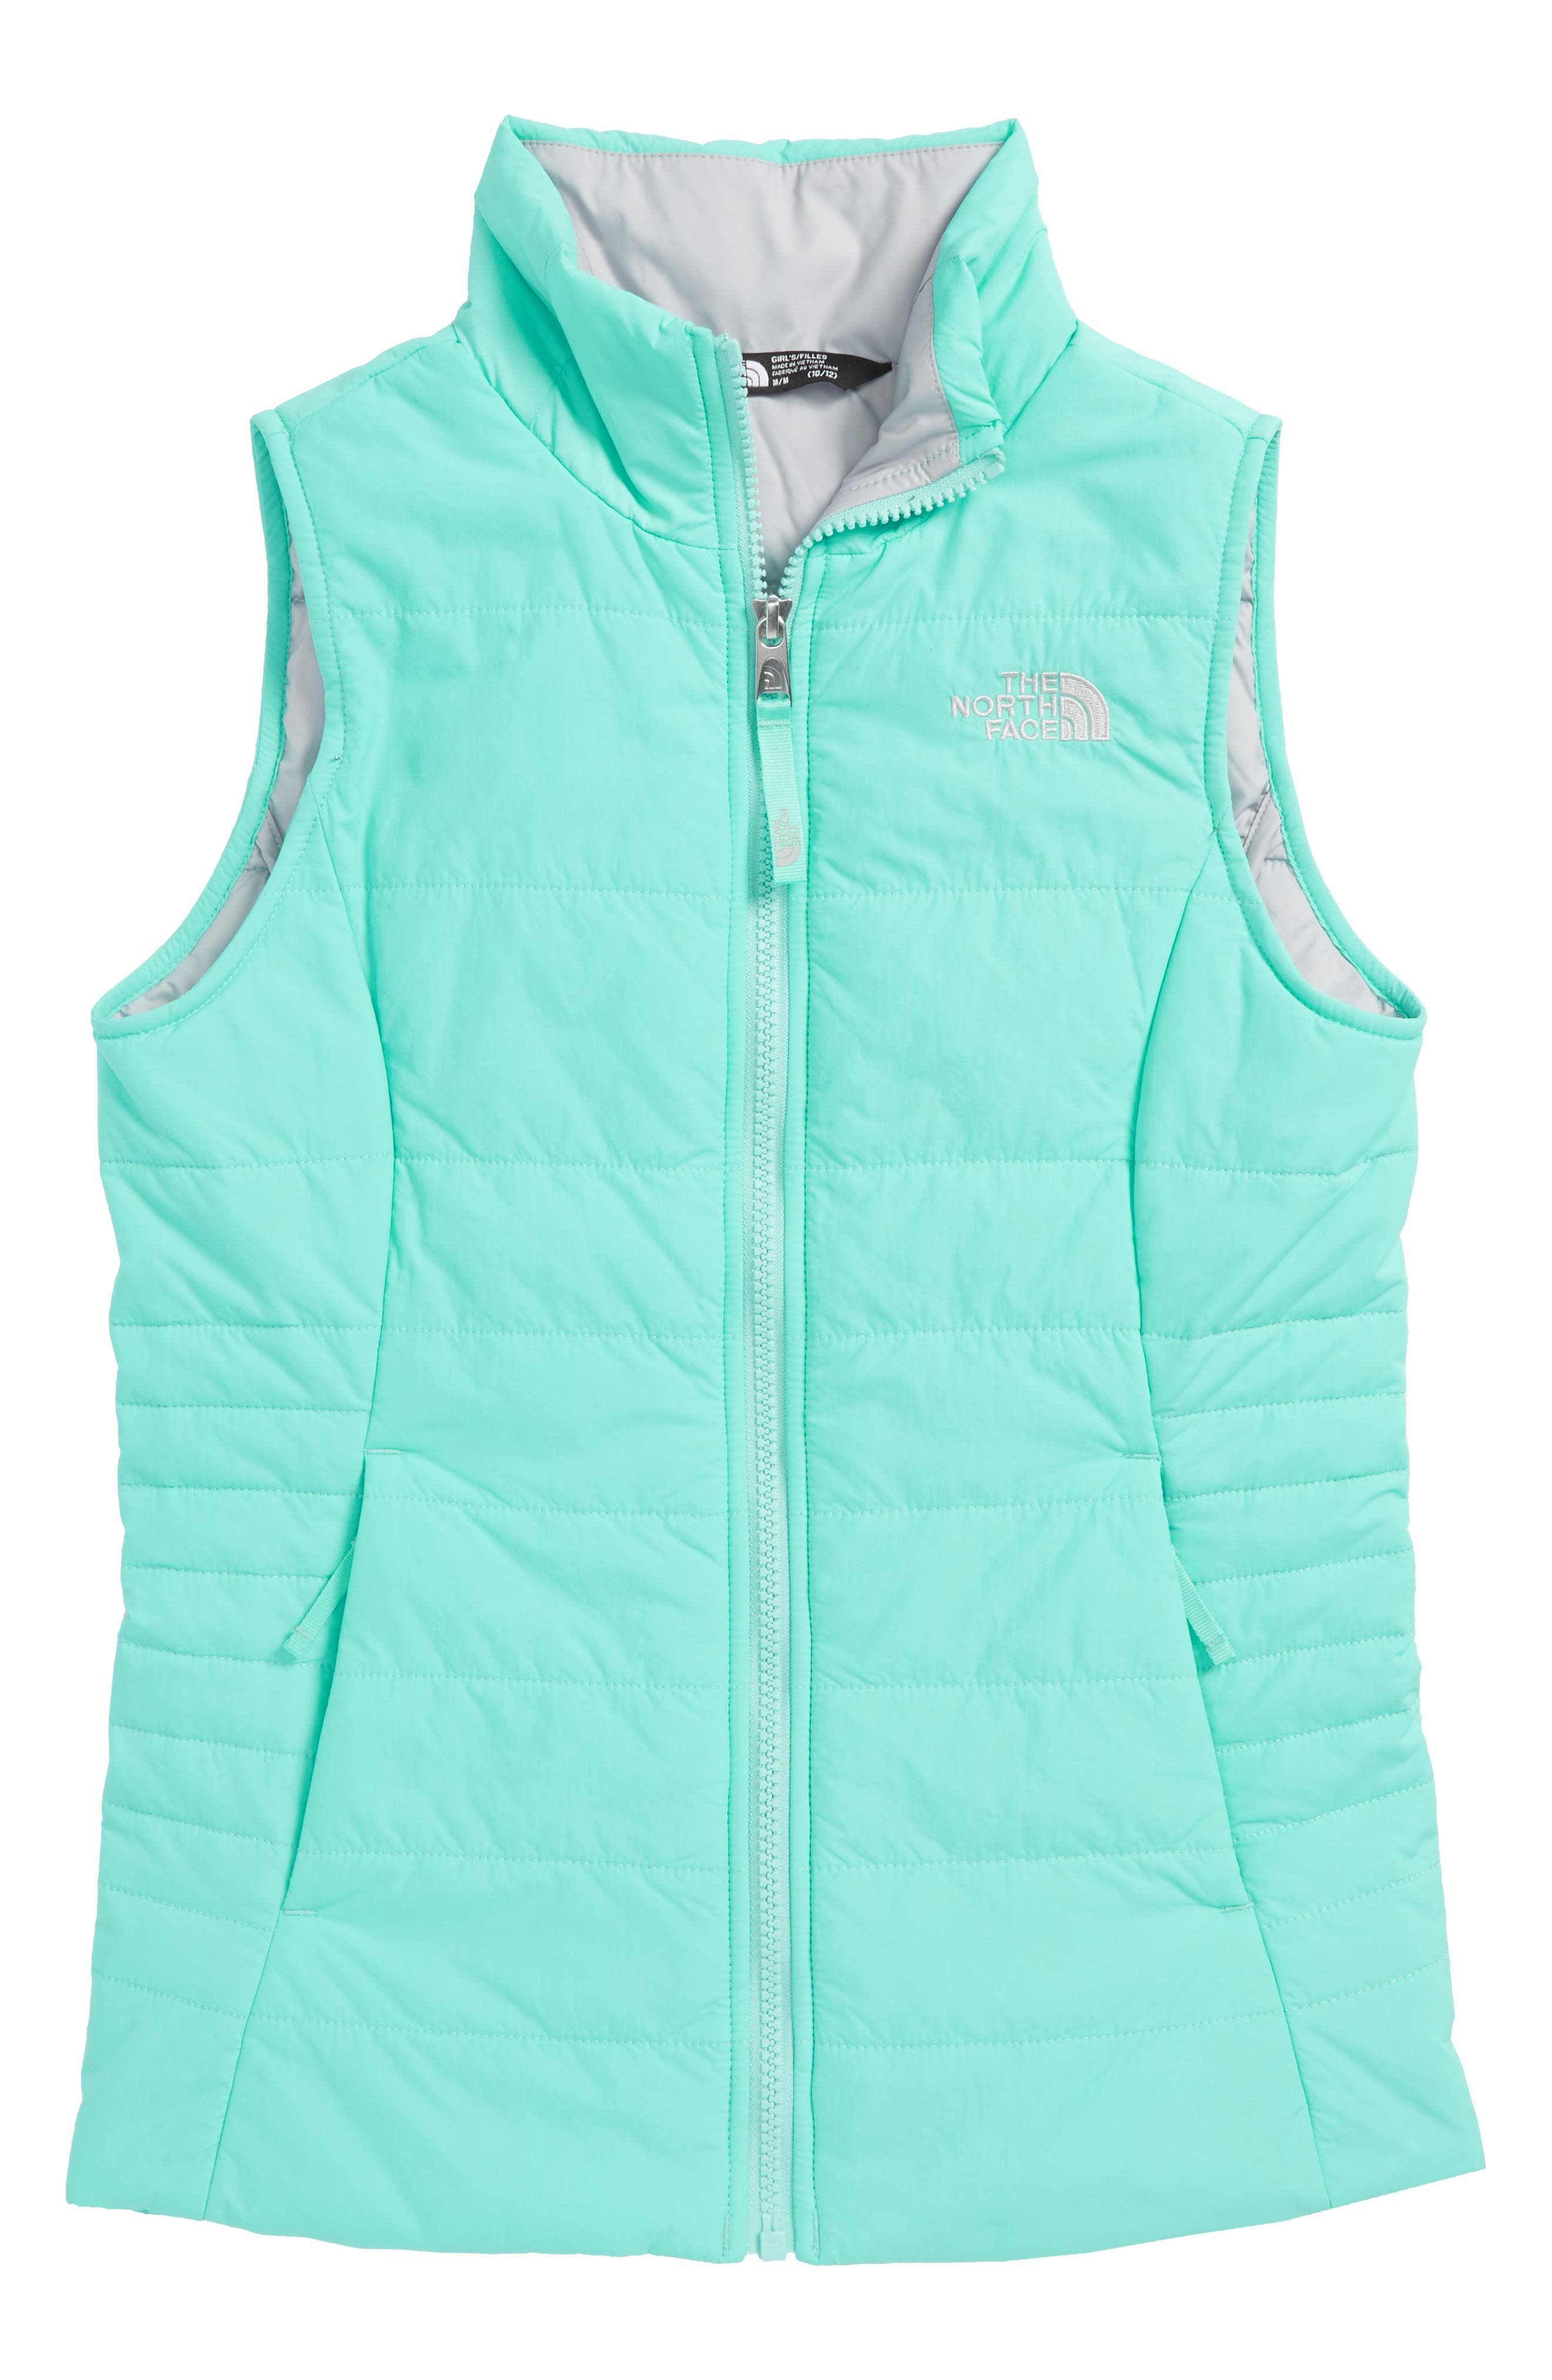 THE NORTH FACE Harway Vest, Main, color, MINT BLUE